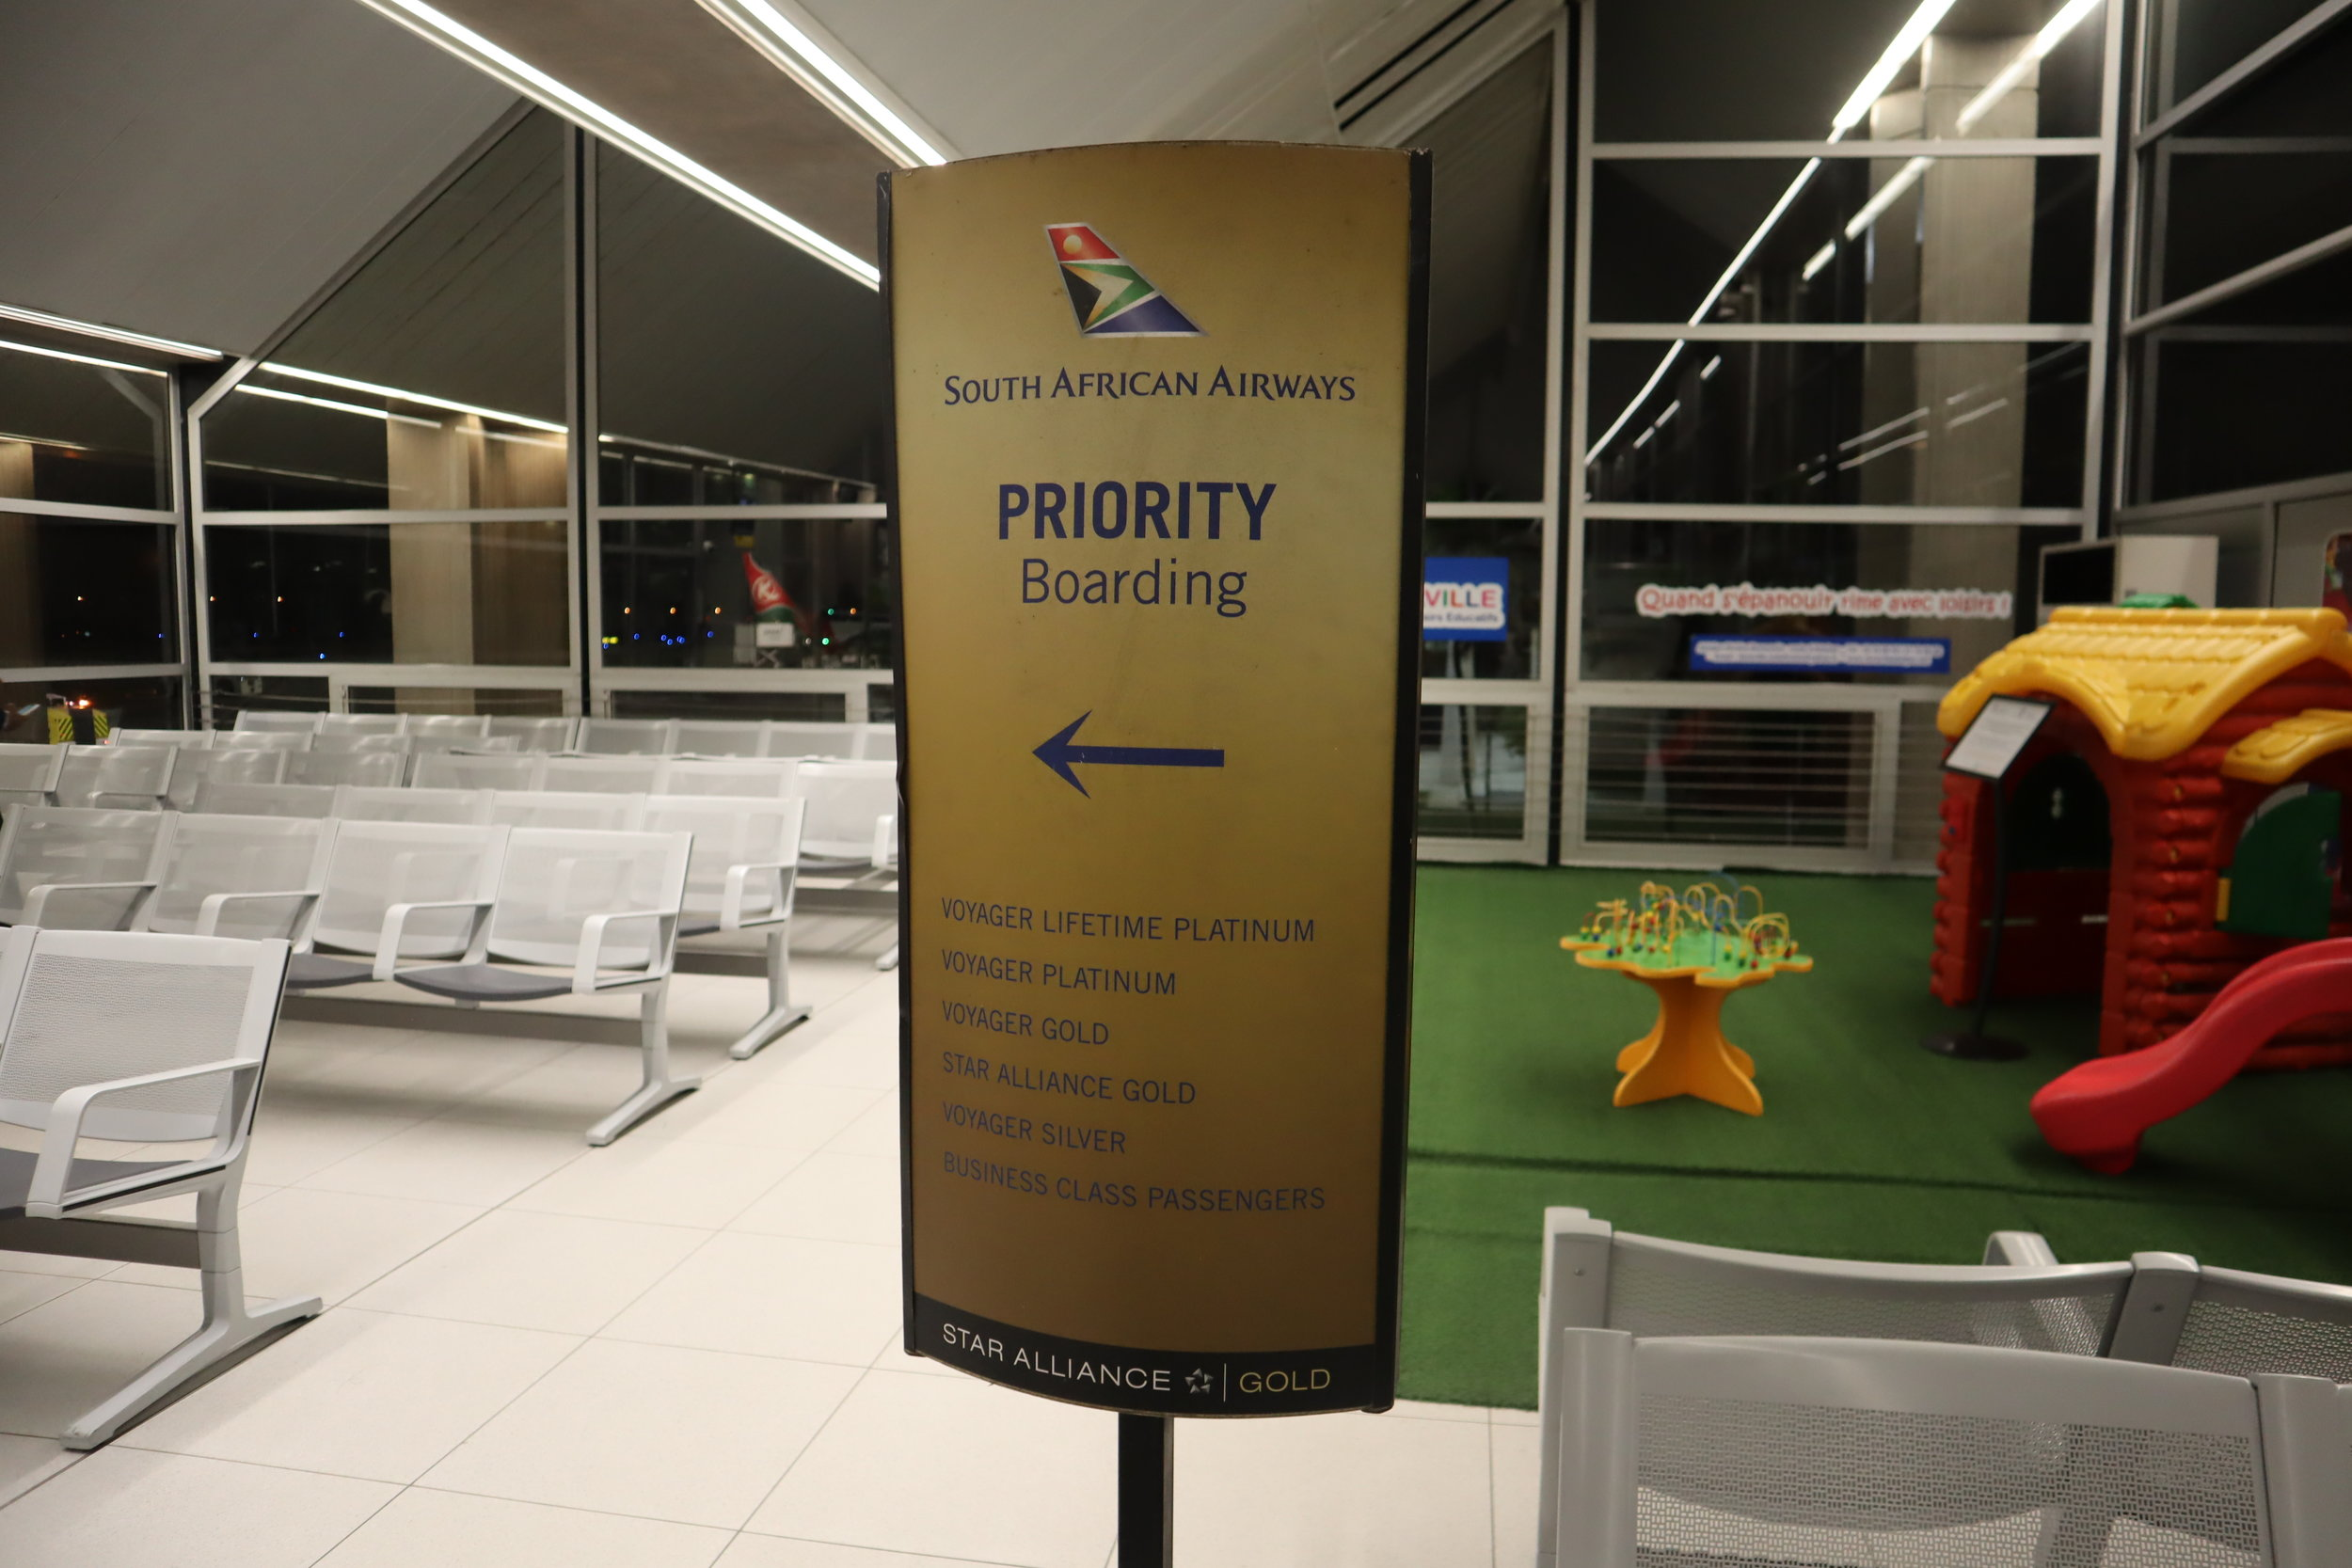 South African Airways business class – Boarding sign